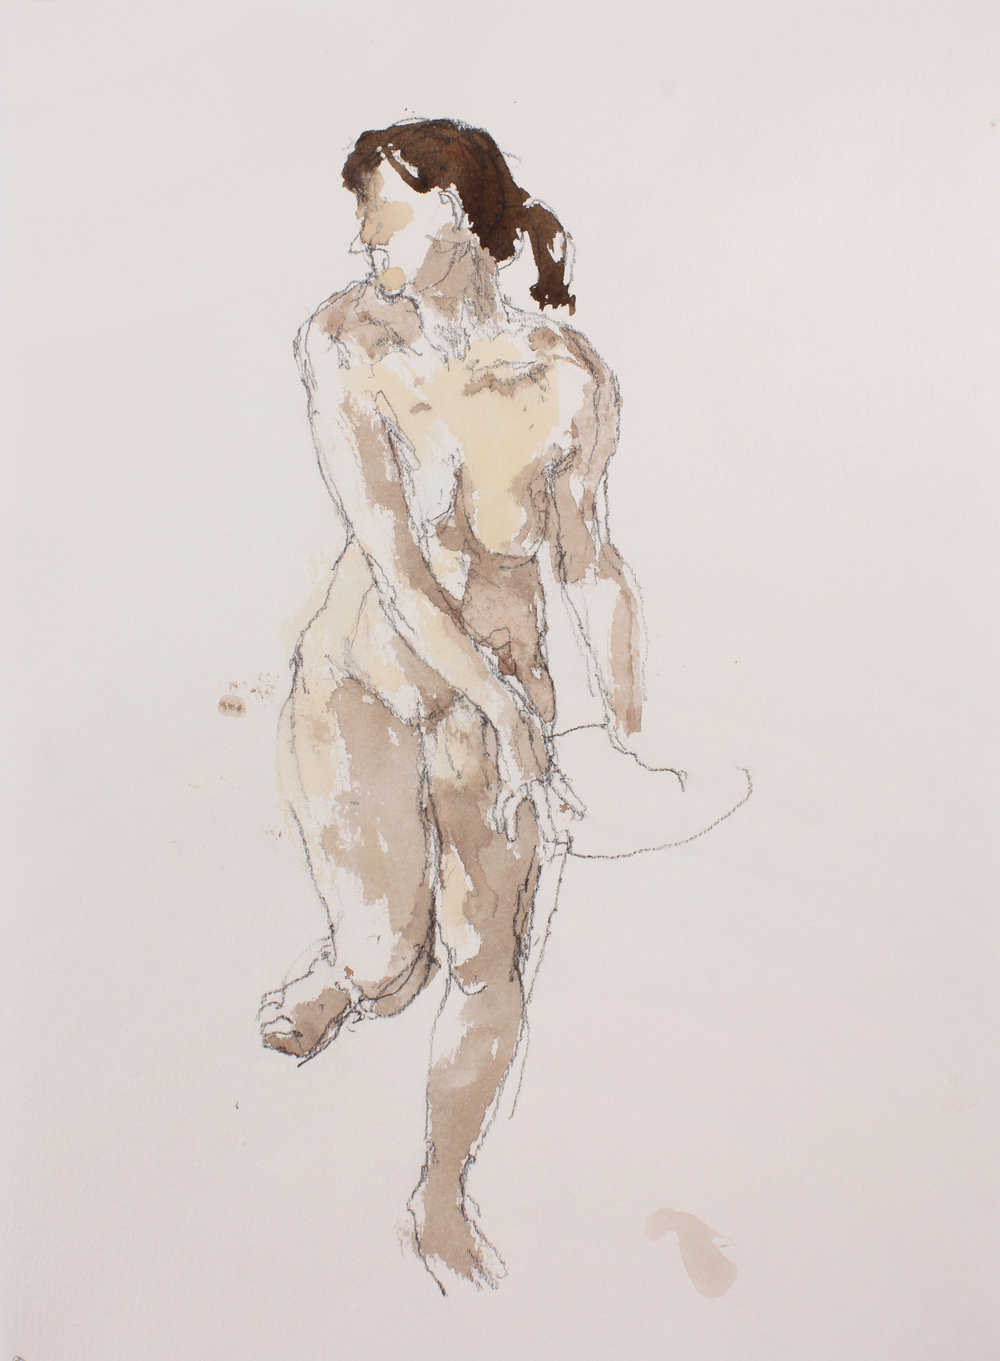 2007_Standing_Nude_with_Raised_Left_Leg_watercolour_and_pencil_on_paper_15x11in_WPF227.jpg